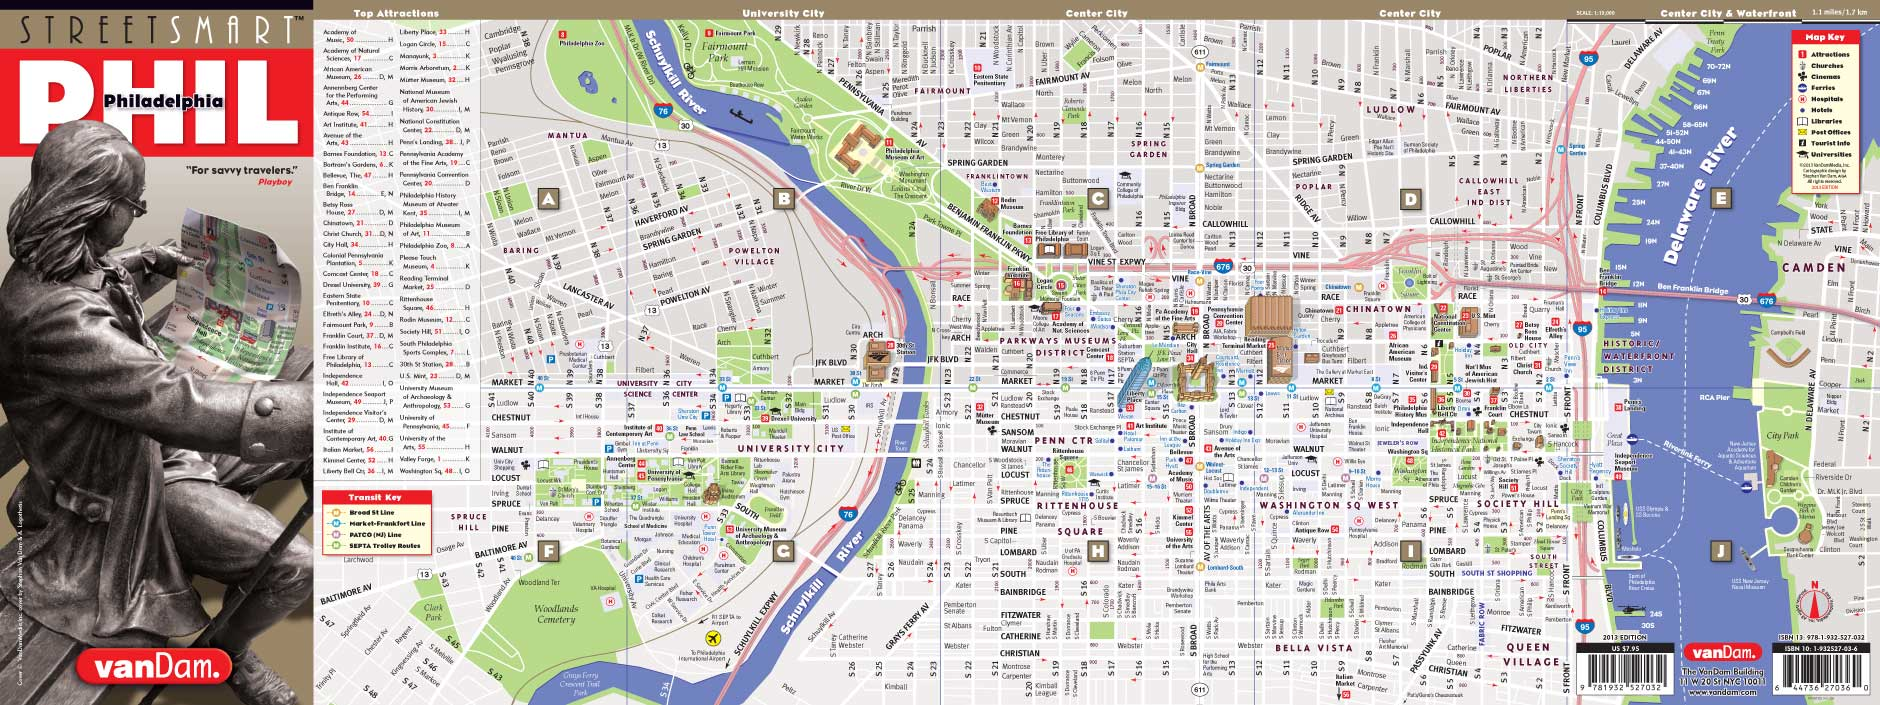 Philadelphia Tourist Map 32793 – Philadelphia Tourist Map